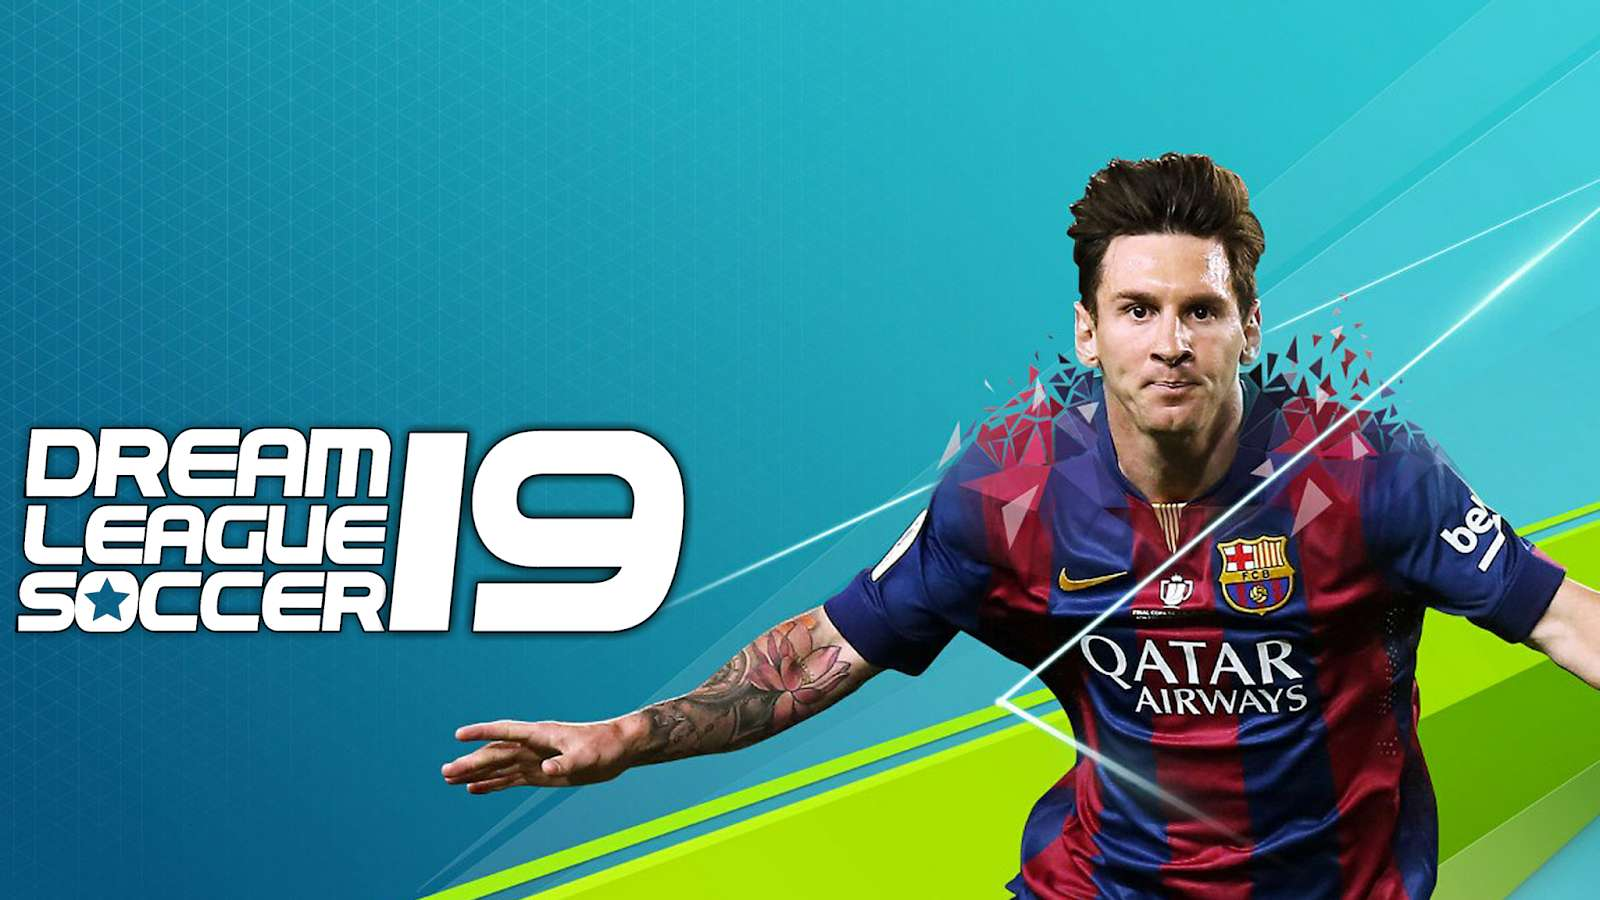 Dream League Soccer 2019 MOD APK 6 13 (Unlimited Money) - AndroPalace